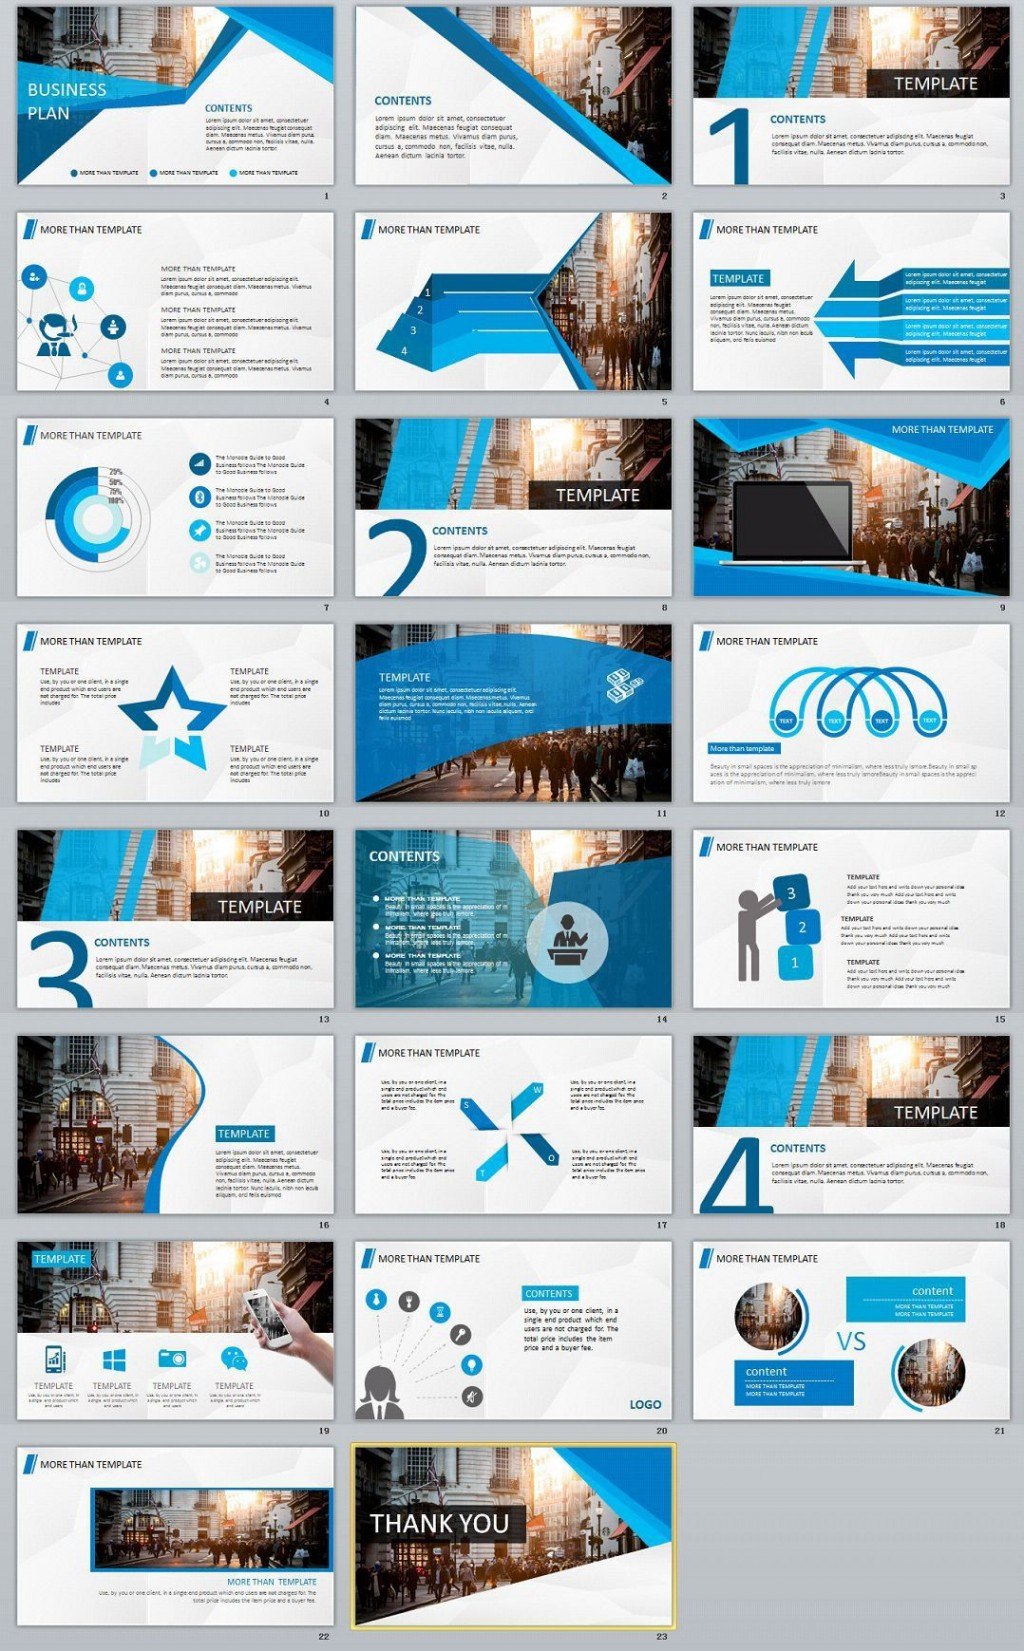 005 Stunning Free Busines Plan Powerpoint Template Download High Definition  Modern UltimateLarge